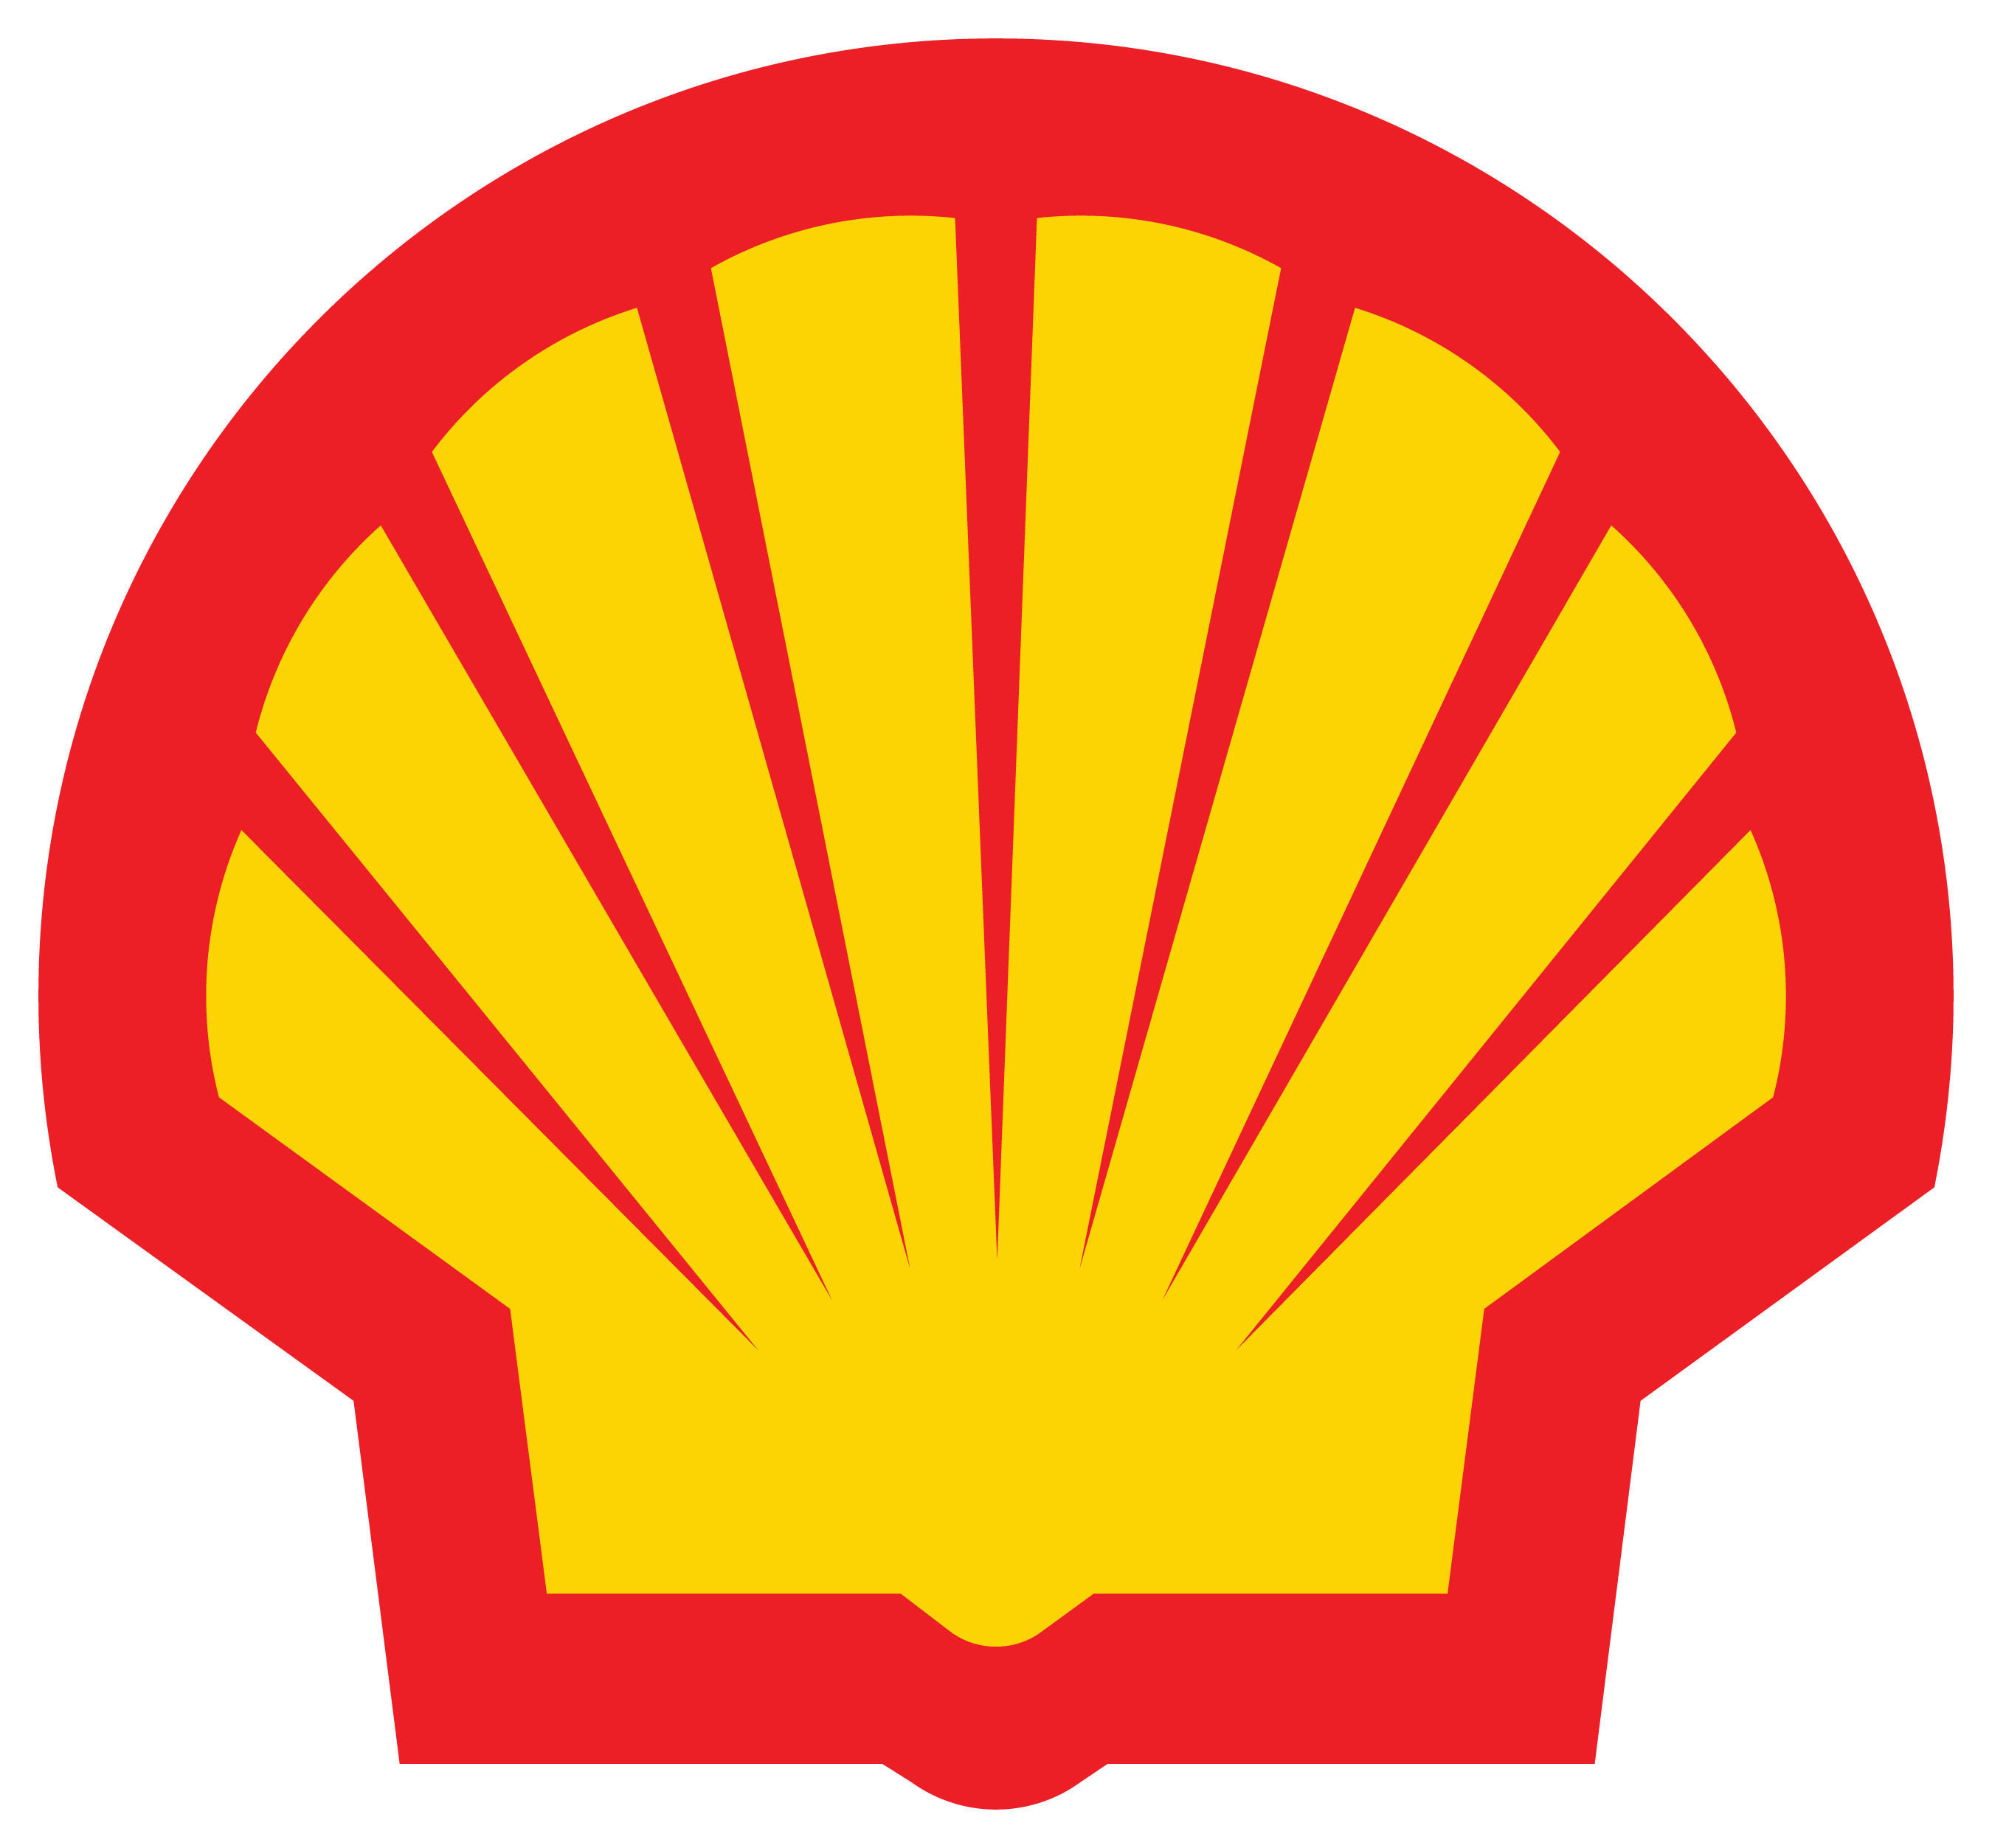 Metals refining operations ltd clipart image download Shell agrees to sale of Martinez Refinery image download